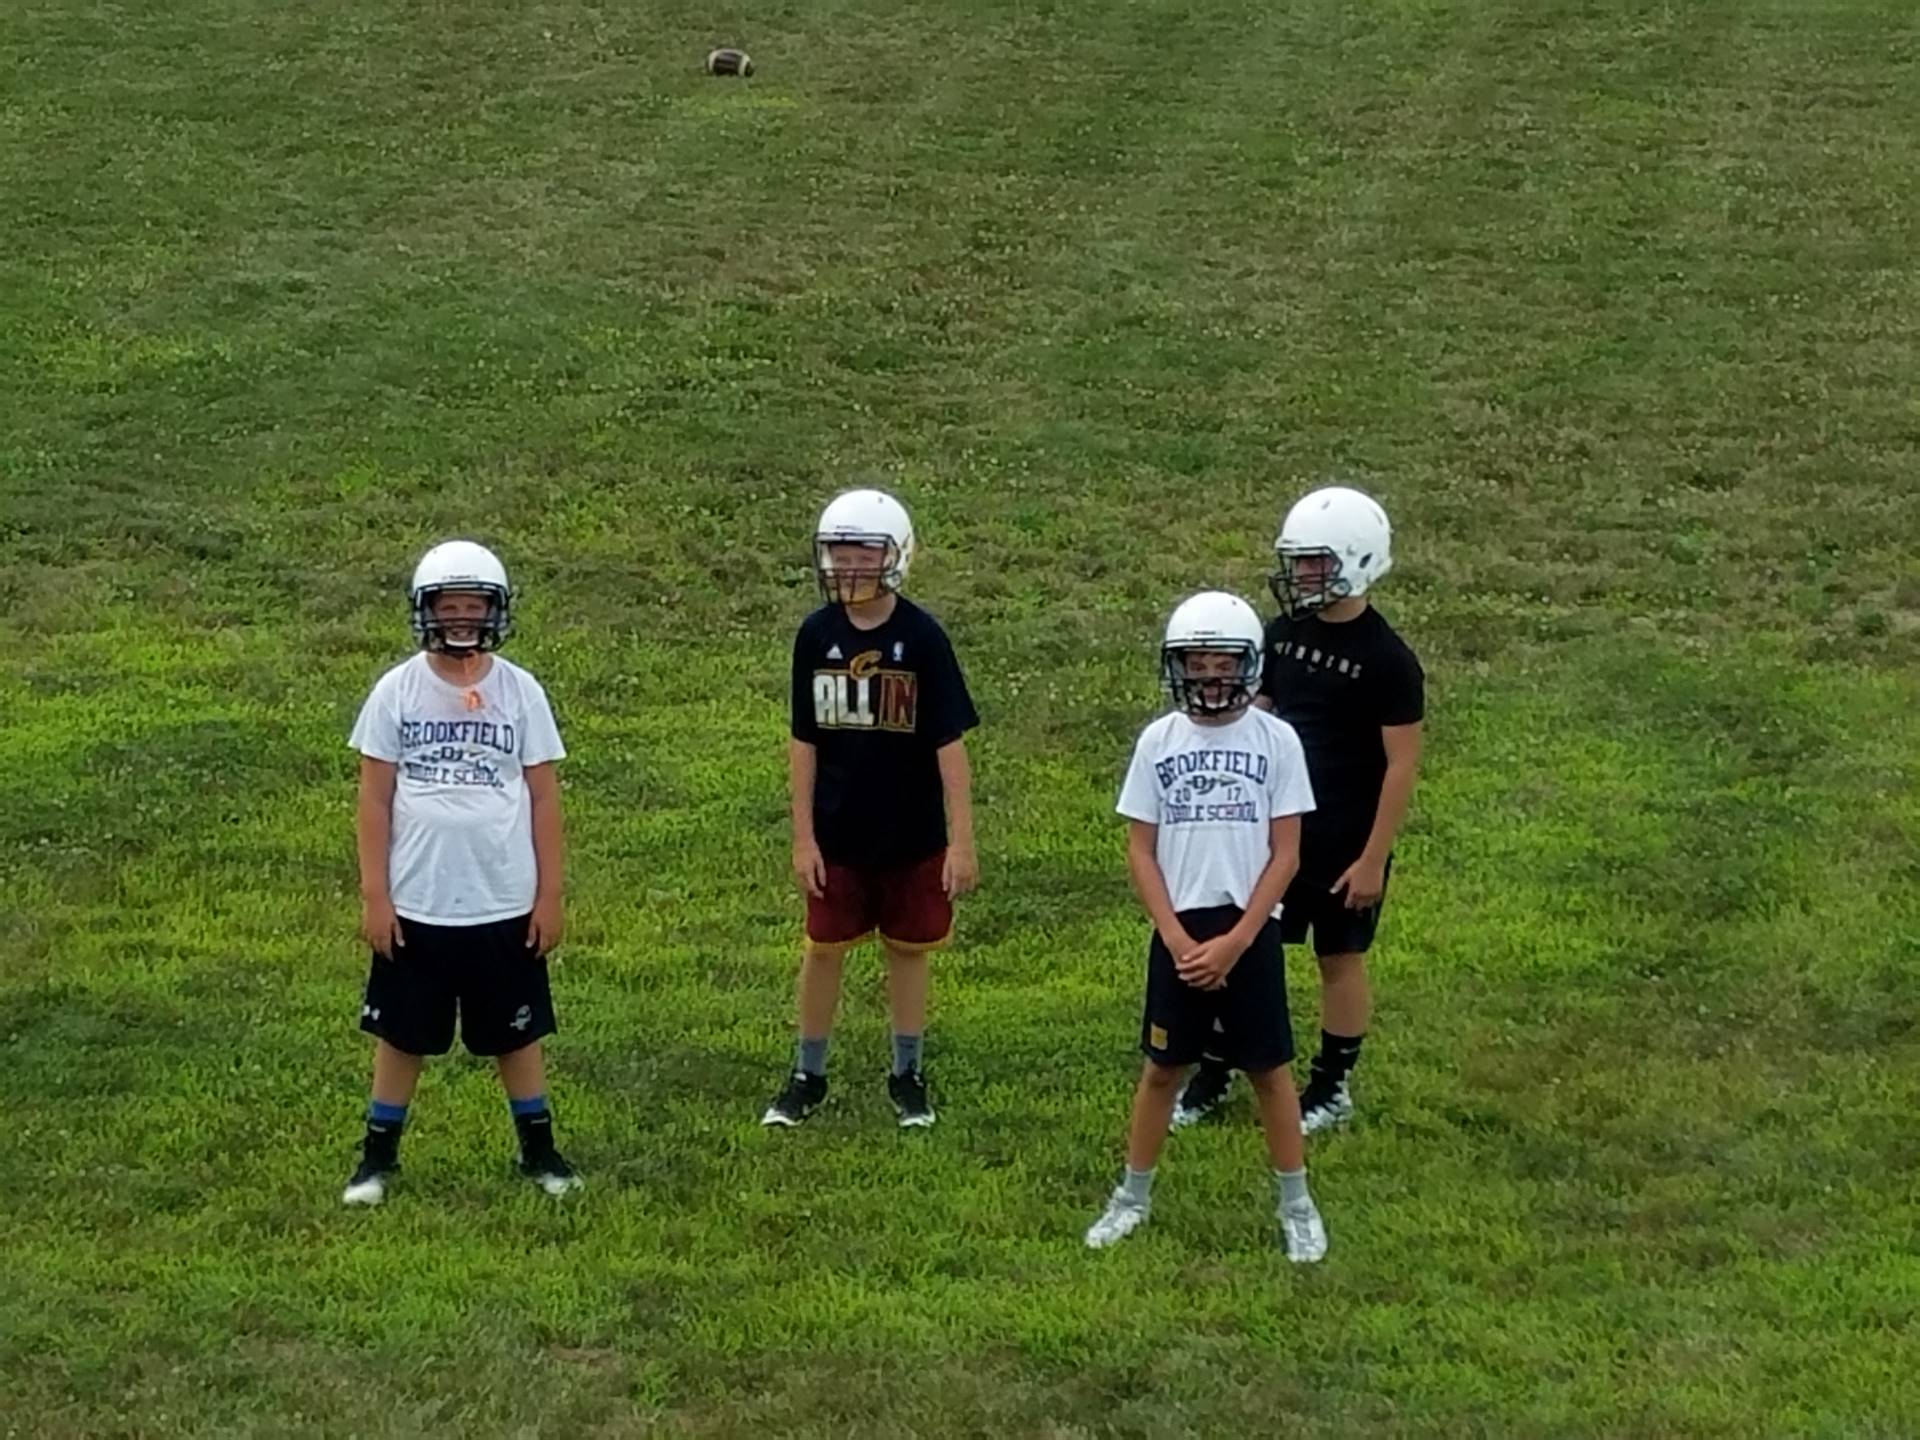 MS Football Team preparing for the season